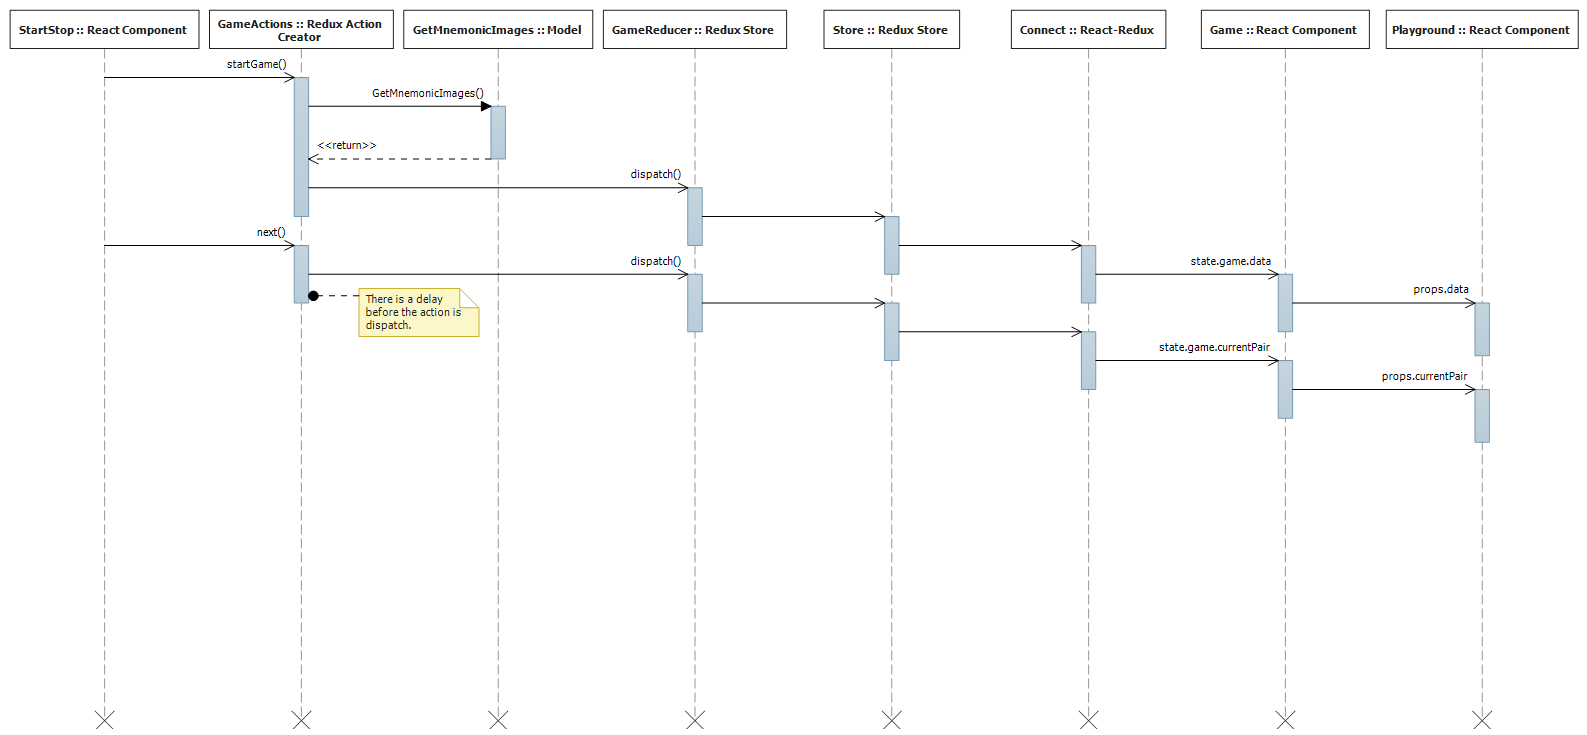 Comparison between the old and new app architecture oskar klintrot start game sequence diagram ccuart Gallery